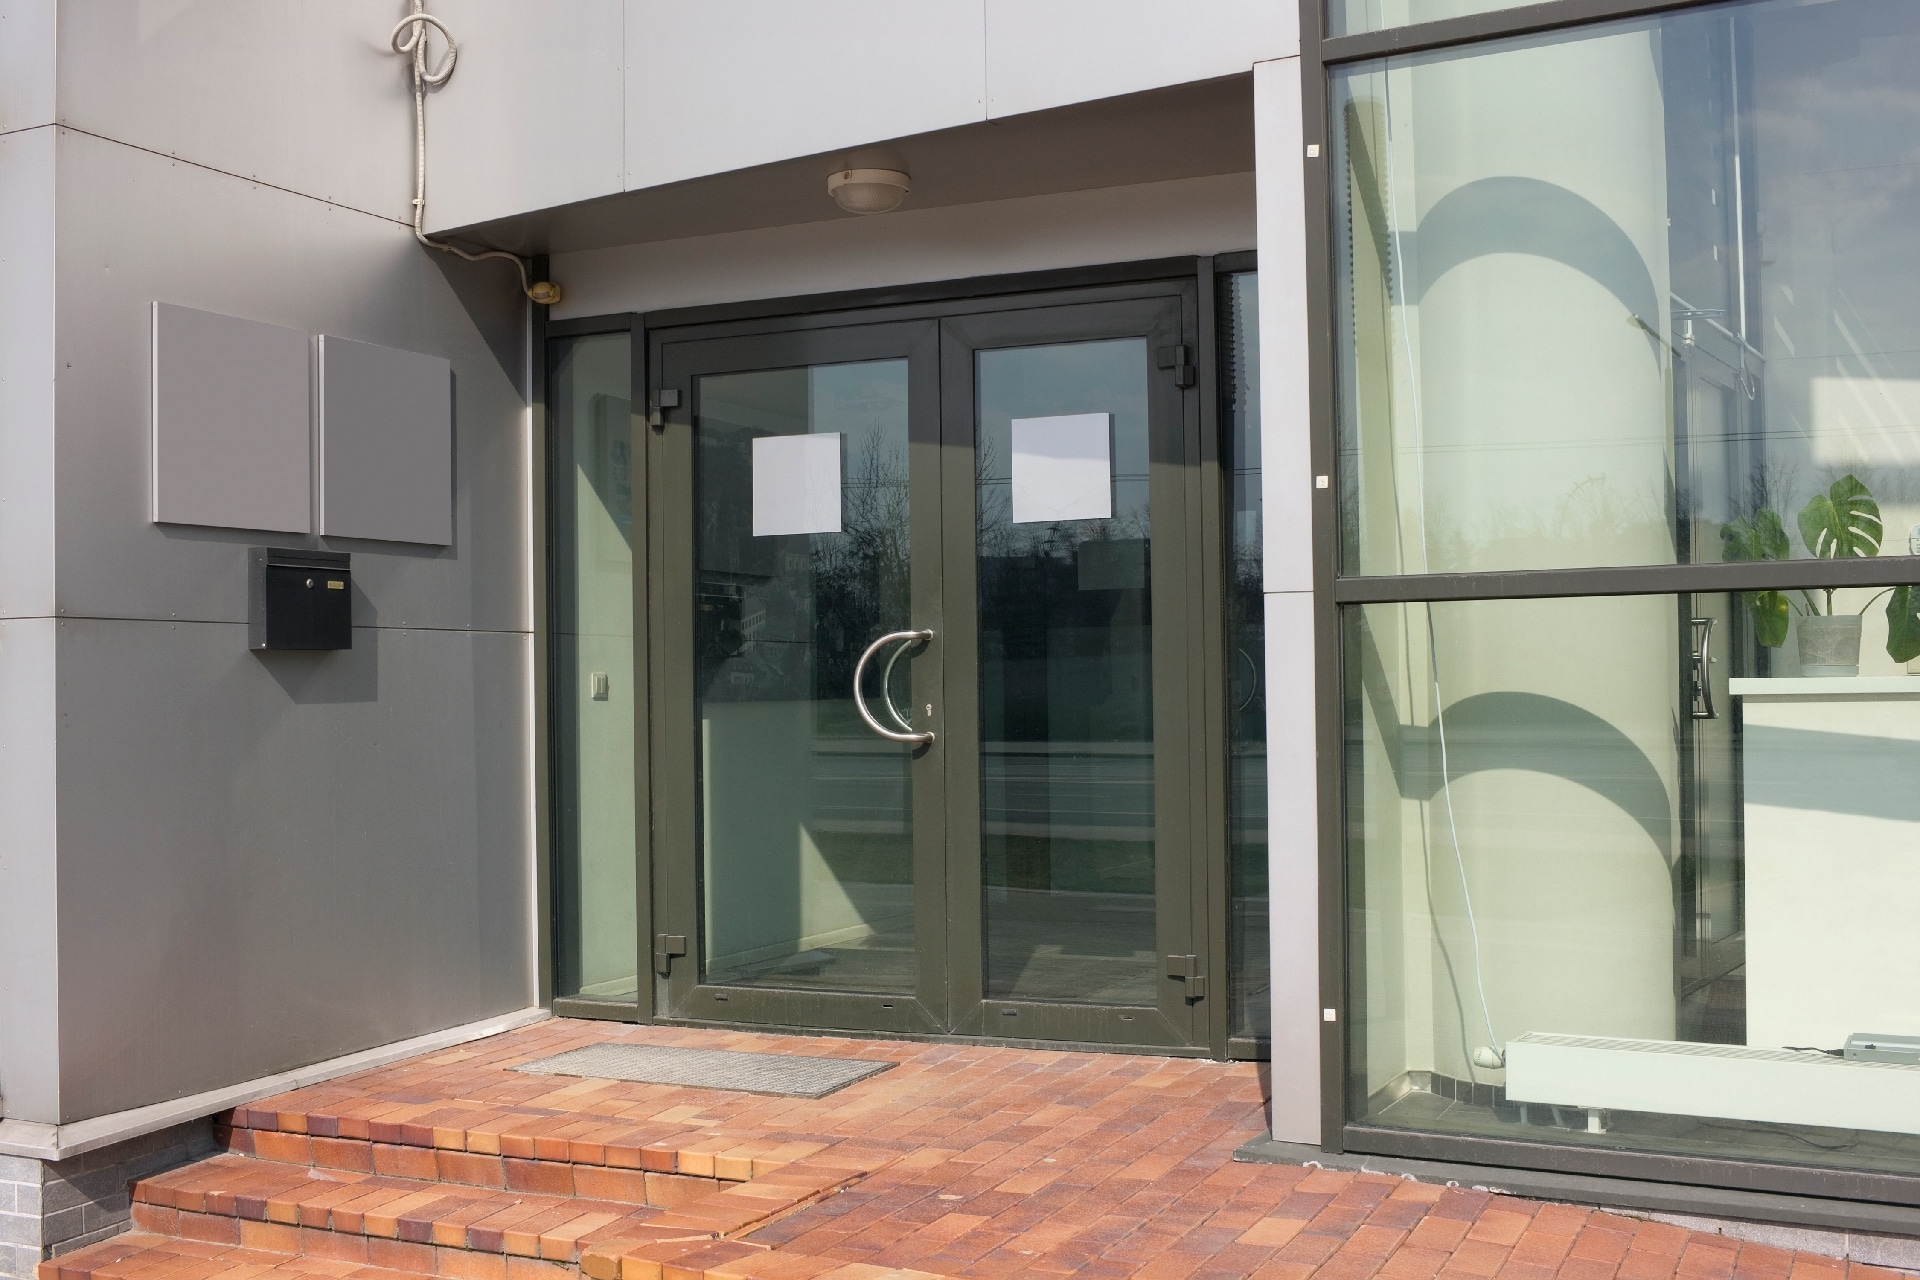 Commercial property glass doors.